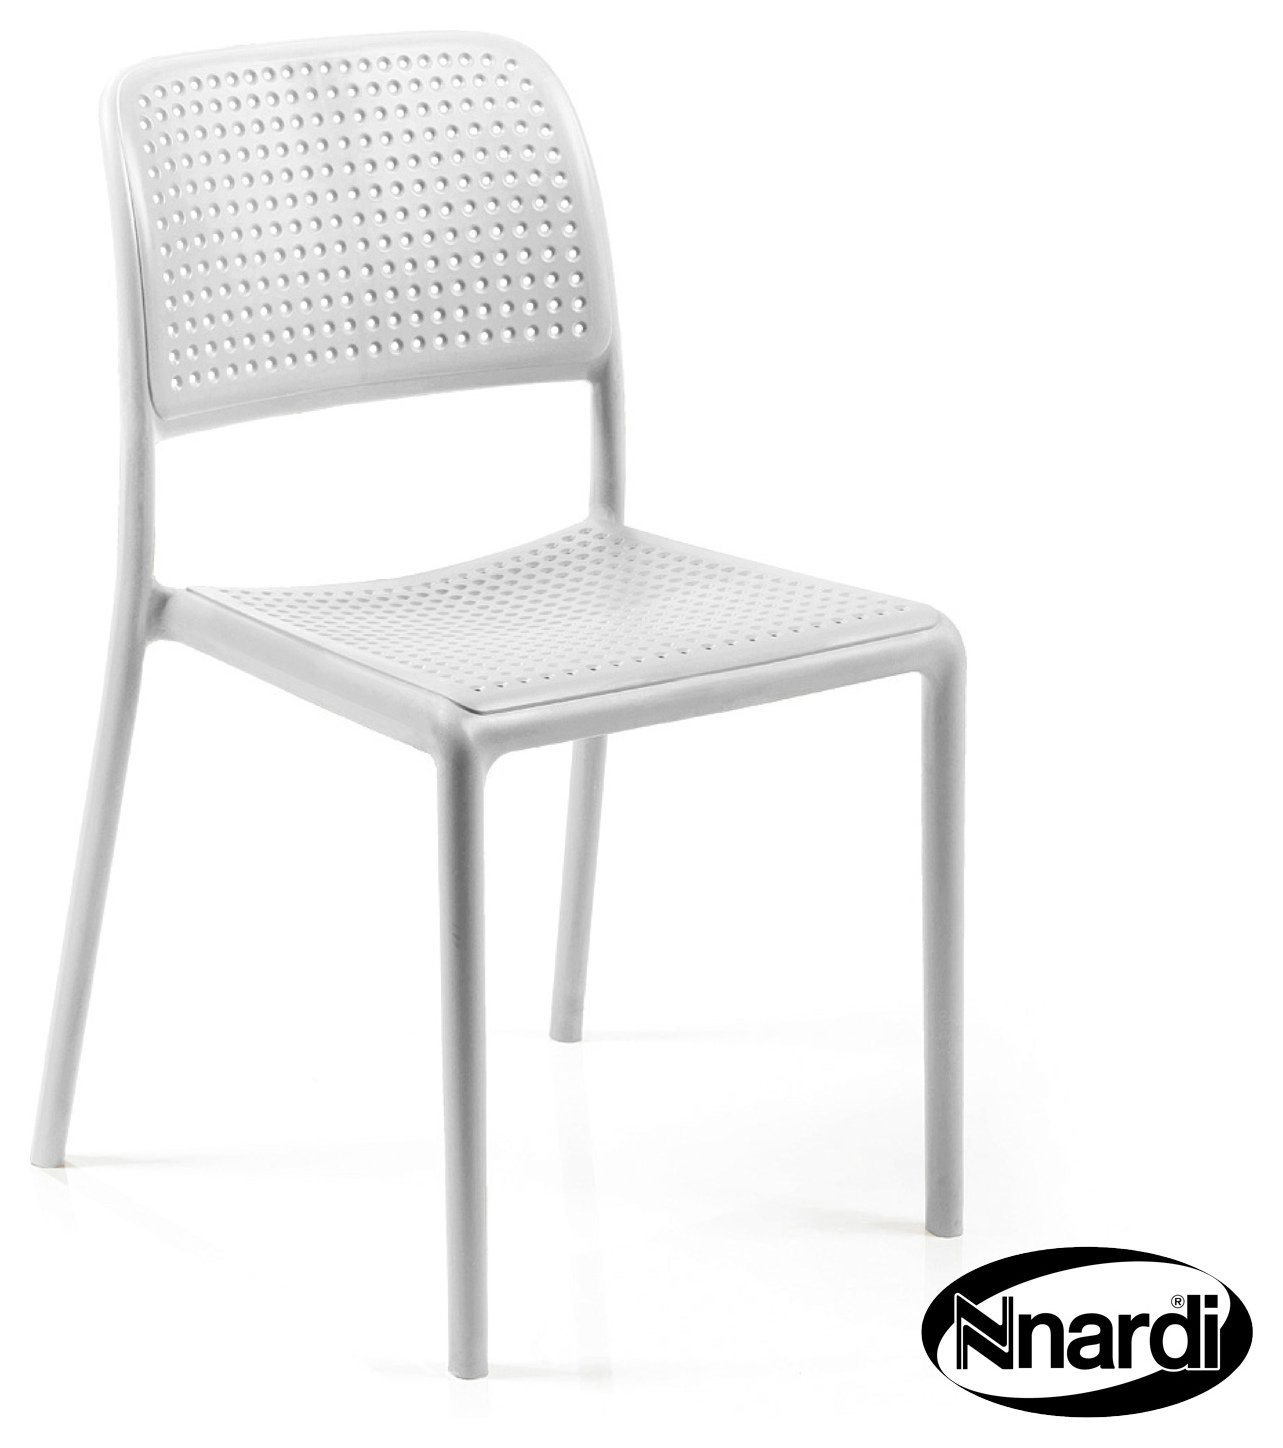 Nardi White Bistro Chair - Pack of 2. lowest price